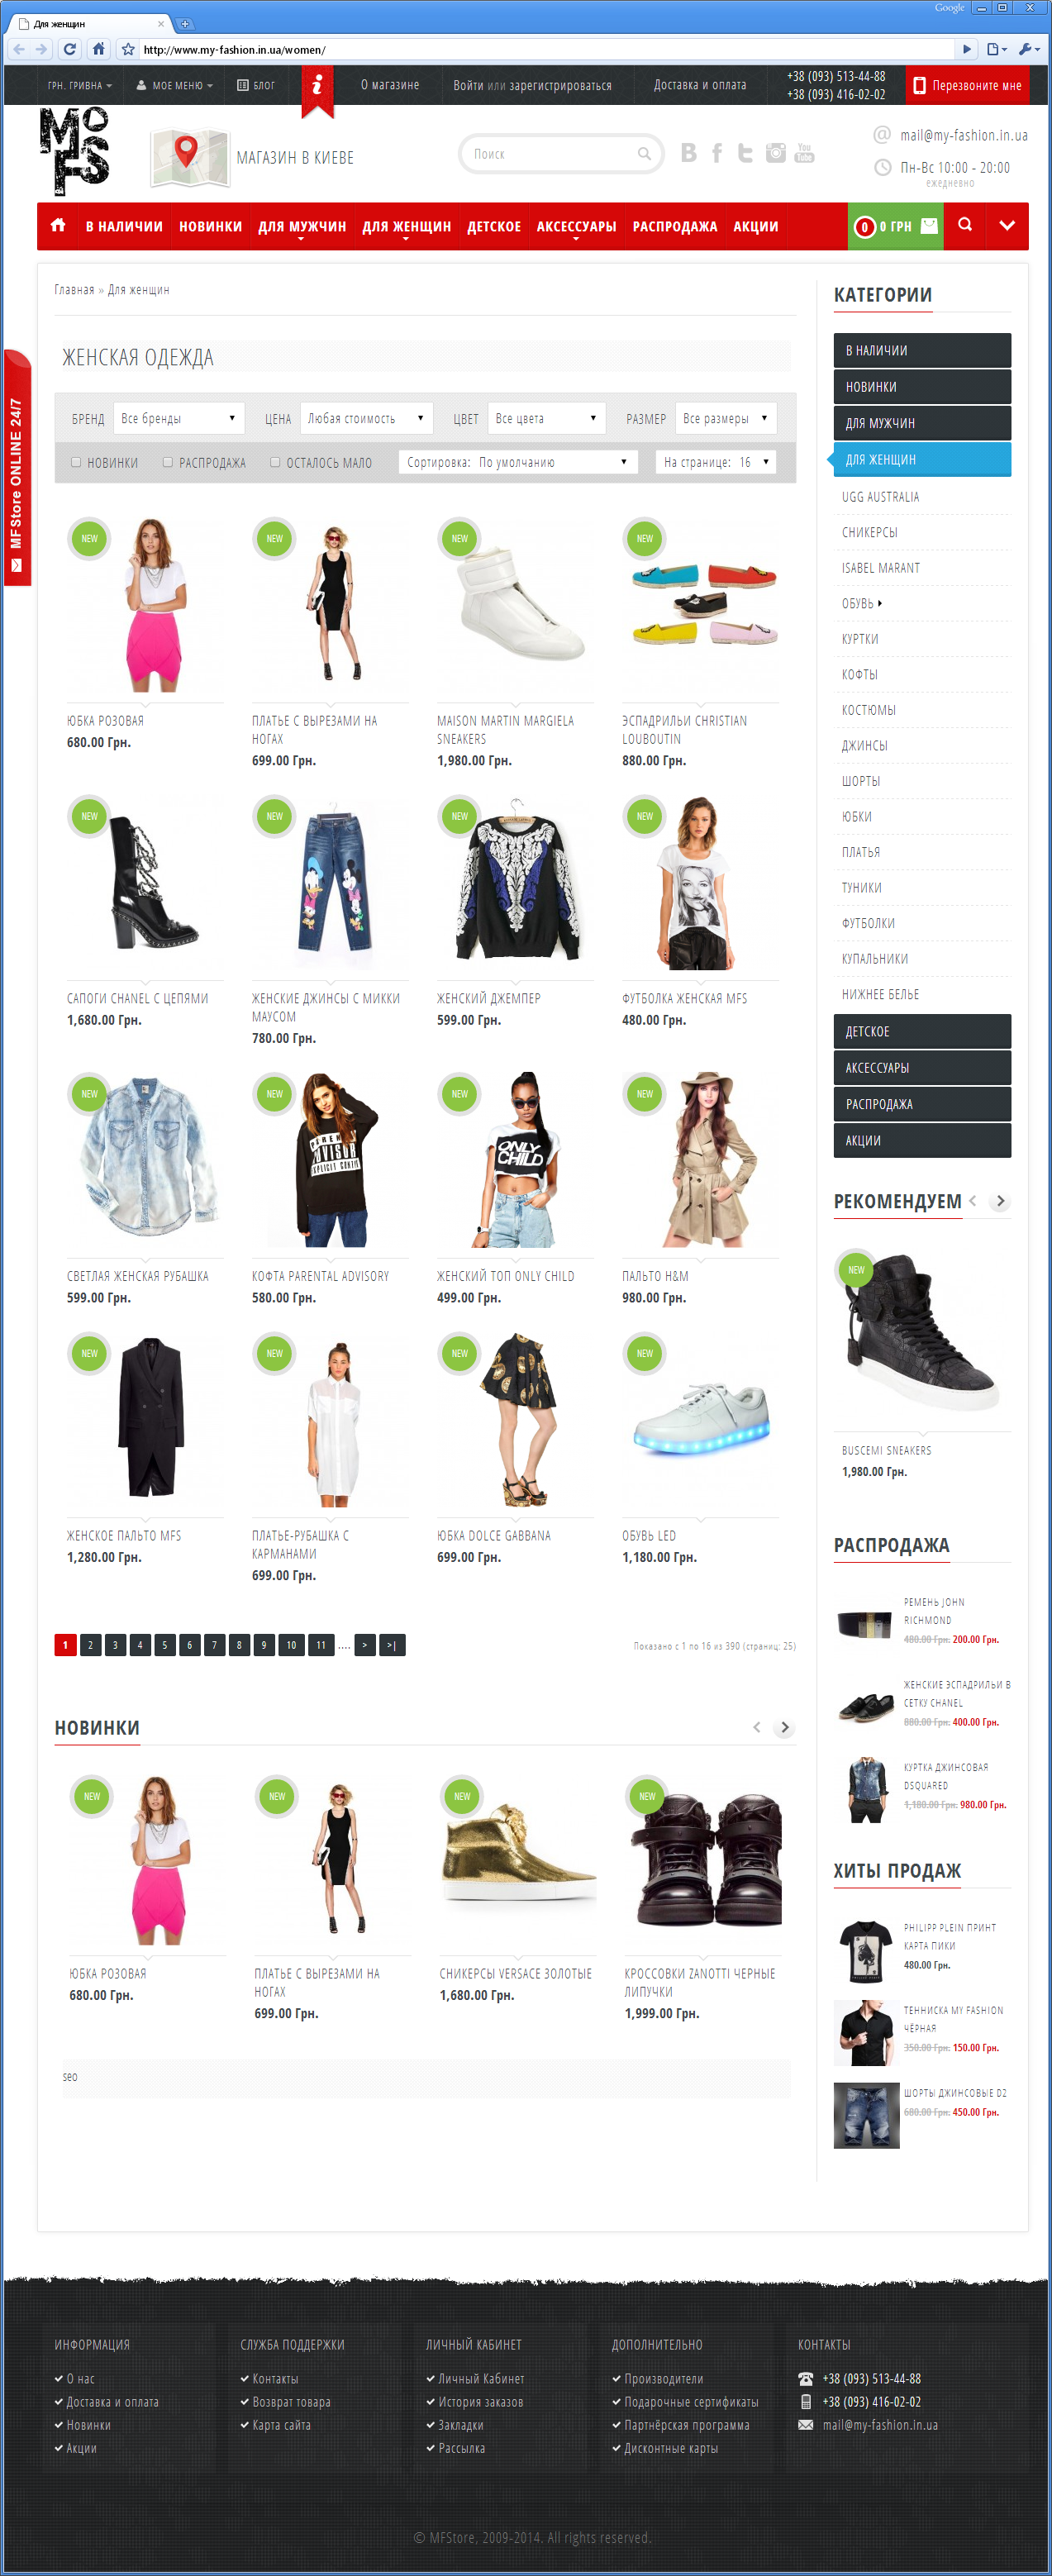 Redesign of an online store elite youth clothing | Evergreen projects 7